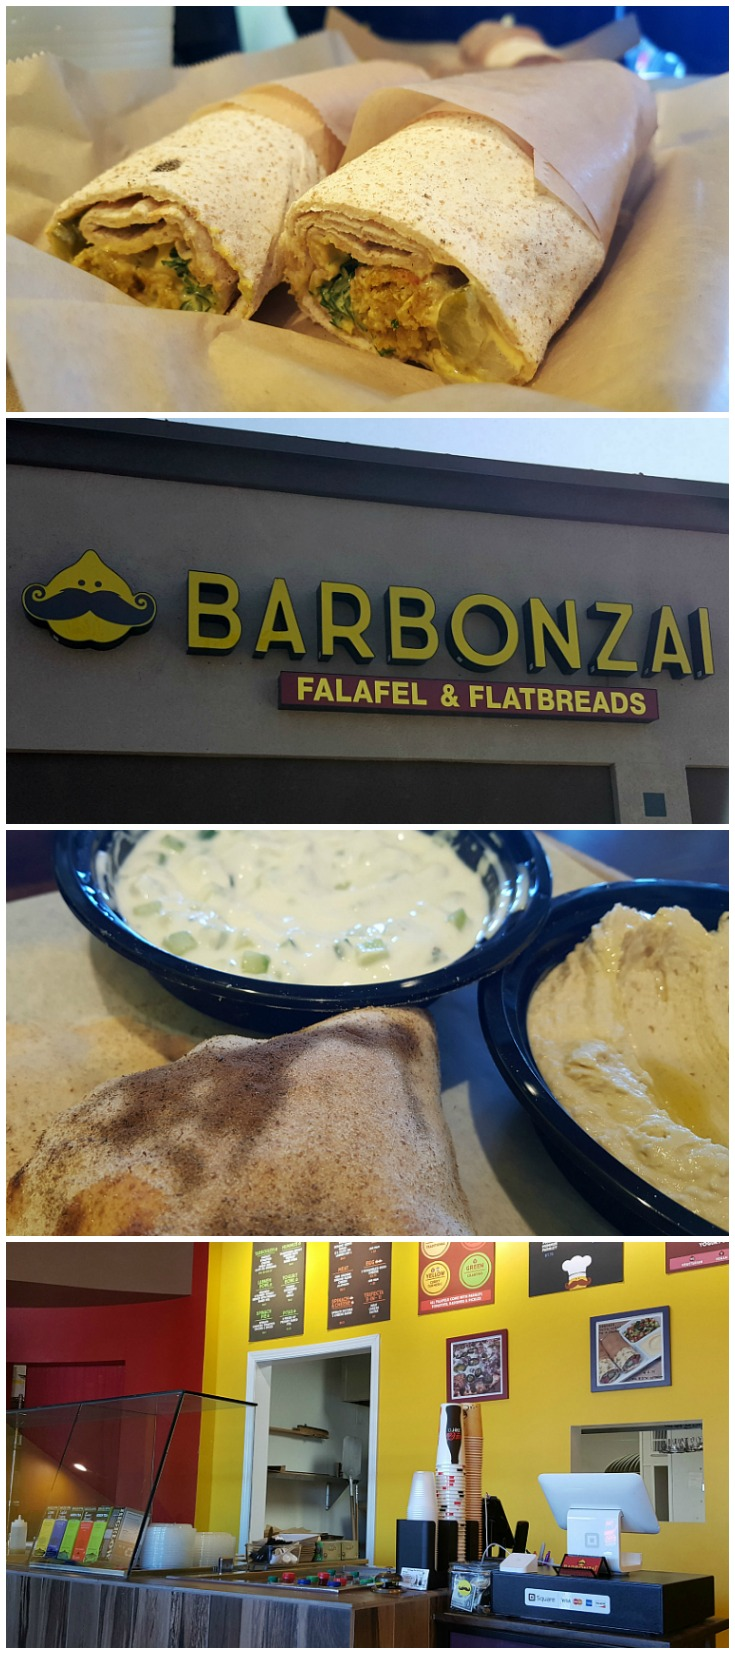 Barbonzai Falafel and Flatbreads in Lake Forest